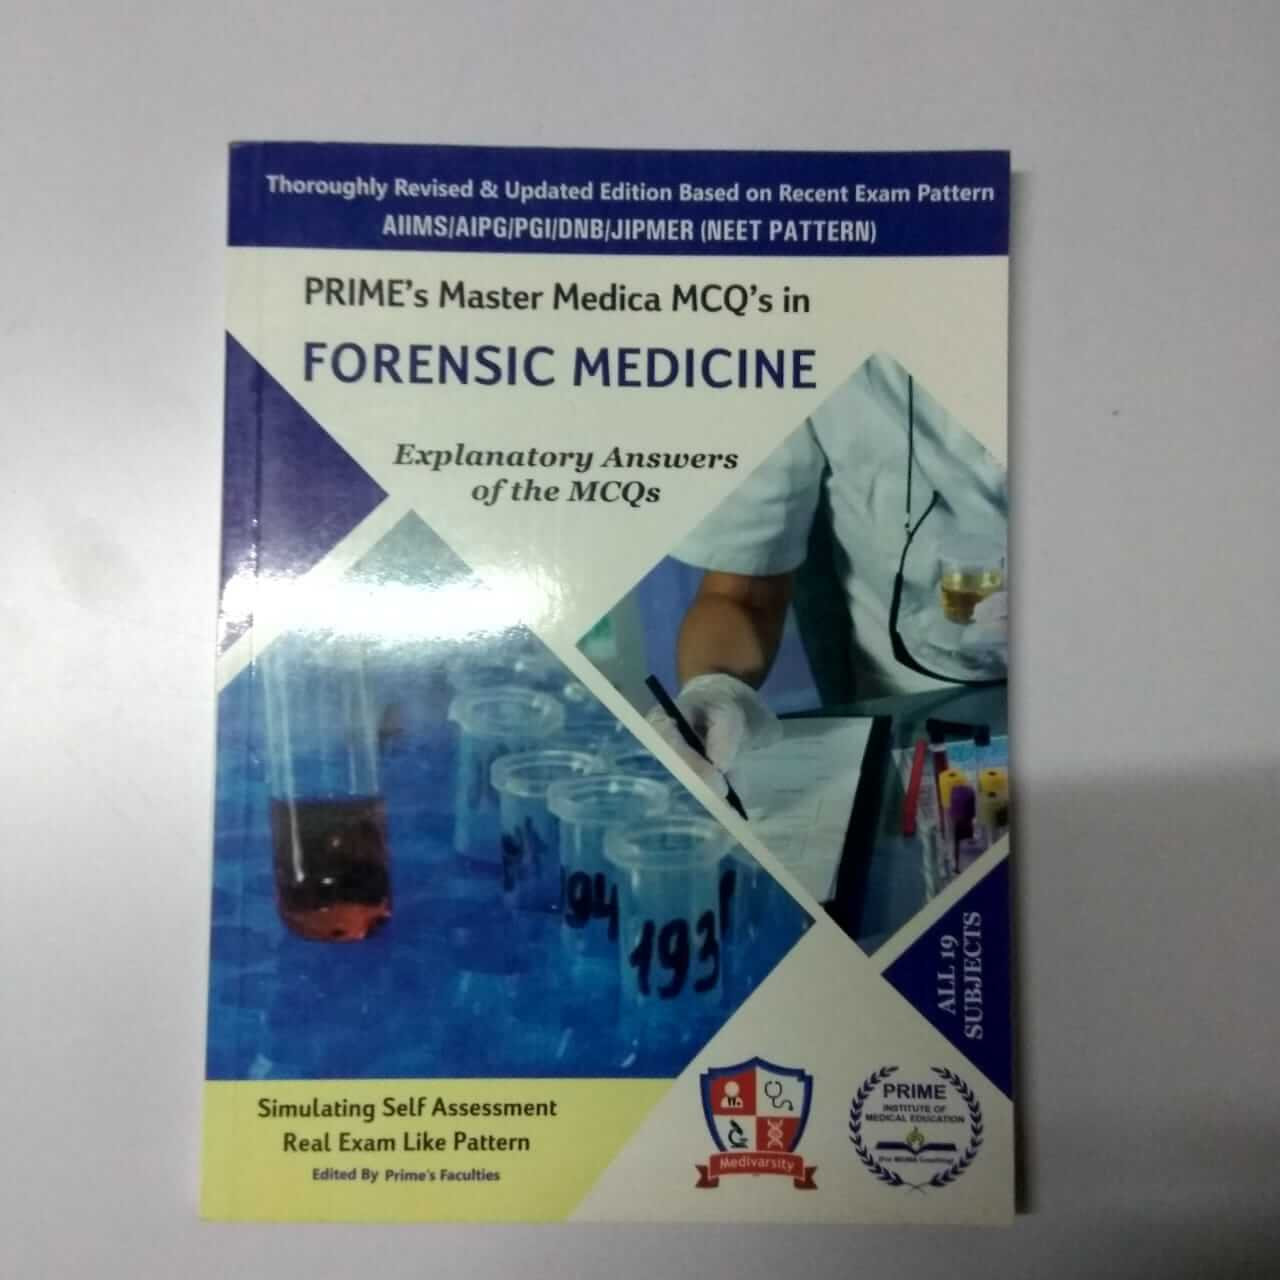 Prime Master Medical Mcq In Forensic Medicine Practice Book For Medical Students For Sale Pikmybook